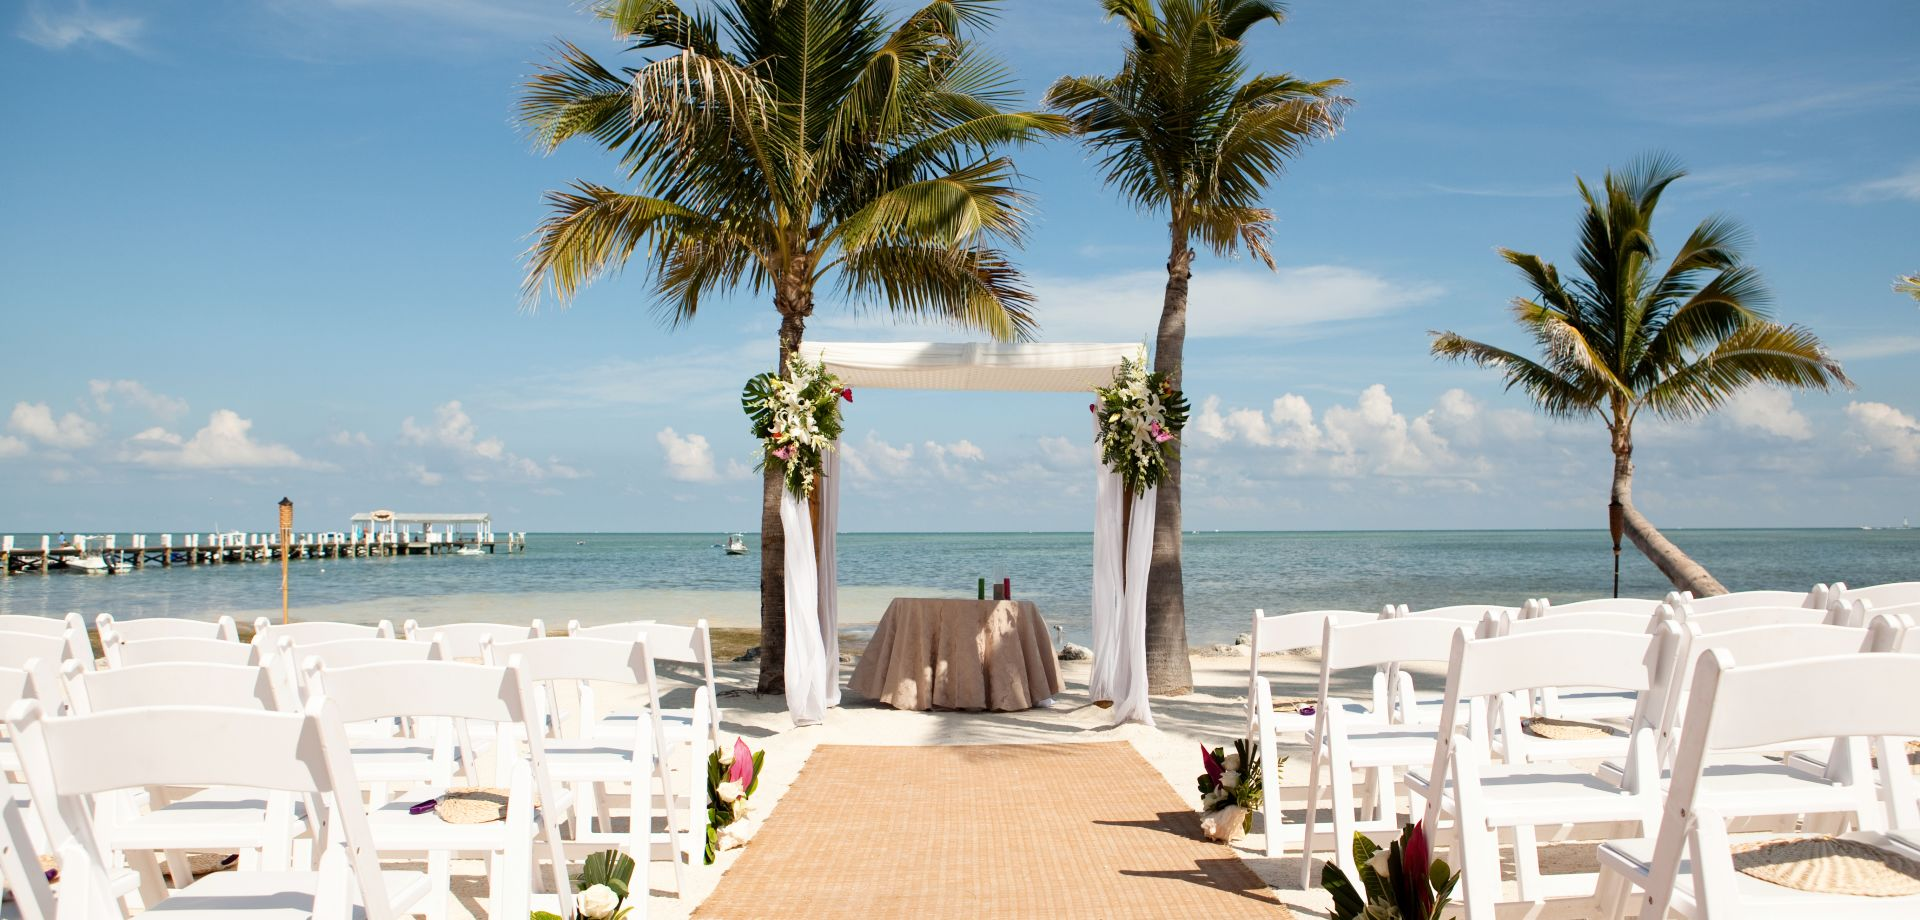 <strong> Legendary Weddings </strong> In a true island paradise